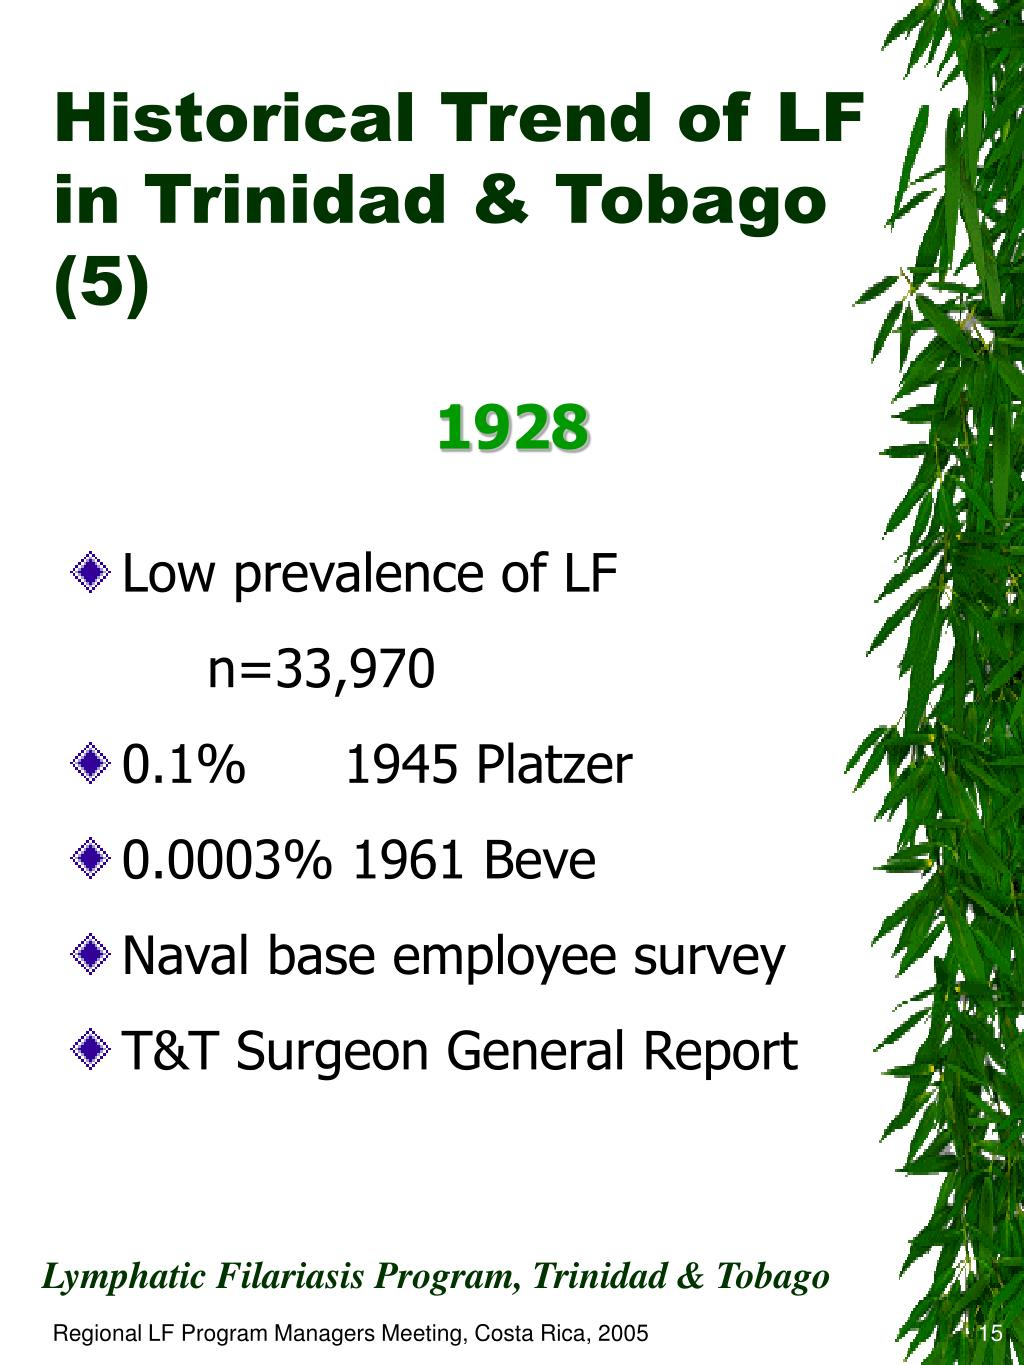 Historical Trend of LF